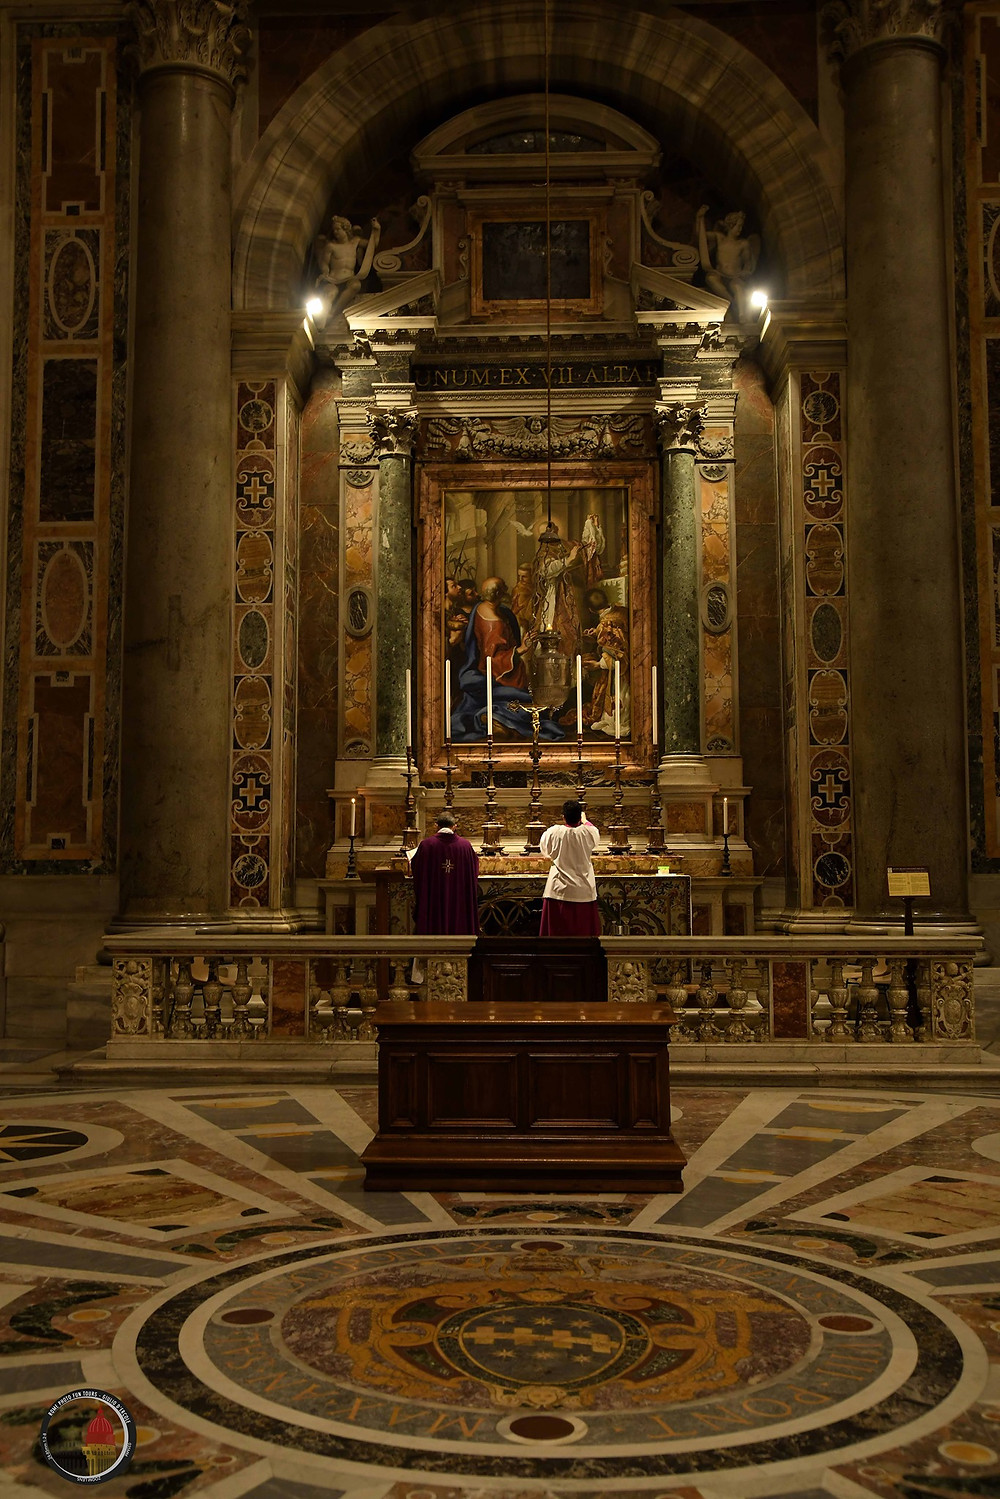 Celebrating mass in St. Peter's Church, Vatican City. Rome, churches, angels and art. Photo by Giulio D'Ercole. Rome Photo Fun Tours